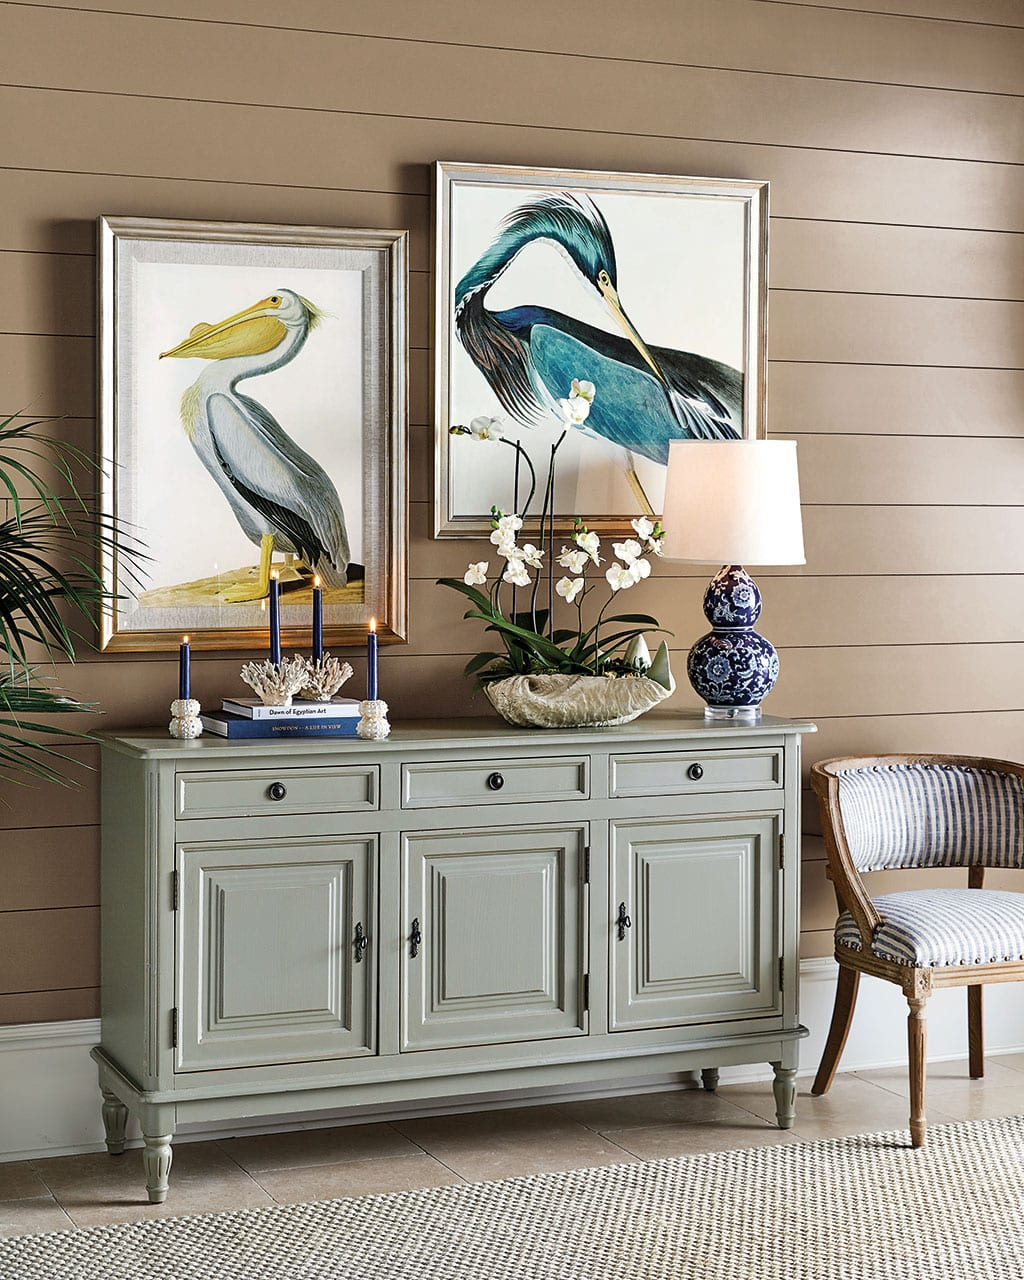 Hanging Wall Art Complete Guide | How To Decorate Throughout 2018 Blended Fabric Spring Party Wall Hangings (View 15 of 20)